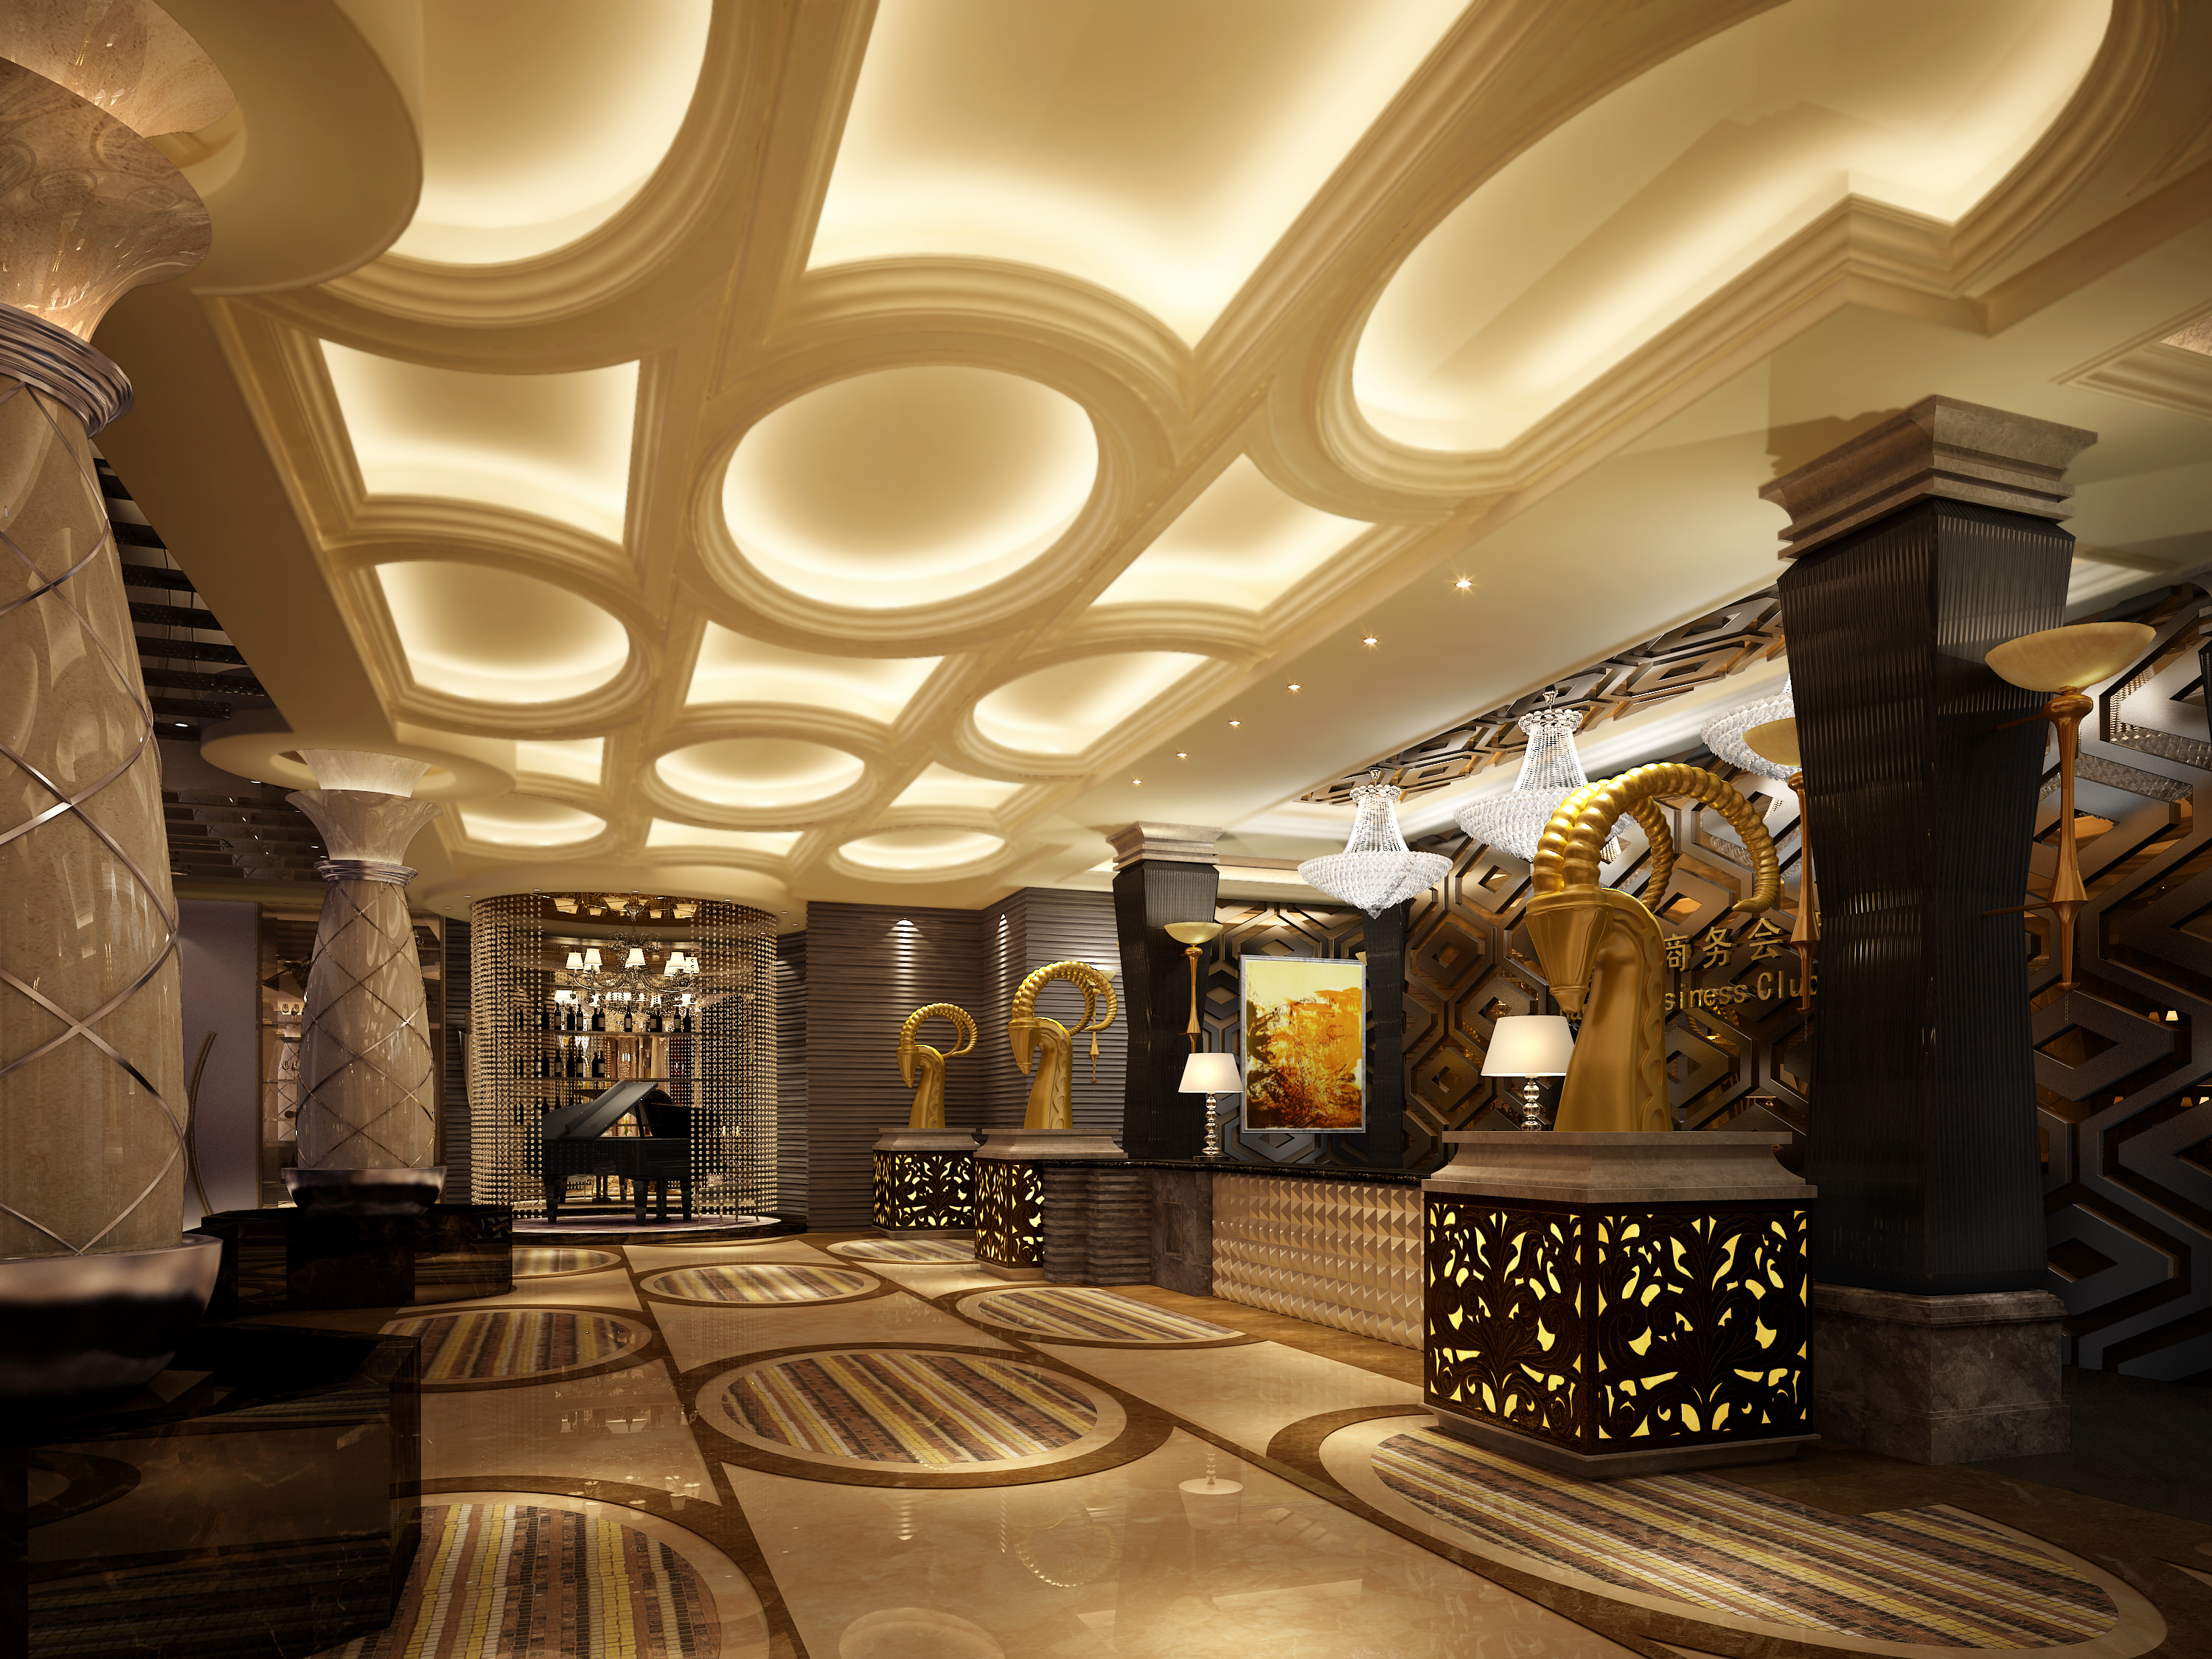 Luxury lobby 3d model max for Interior designs images free download